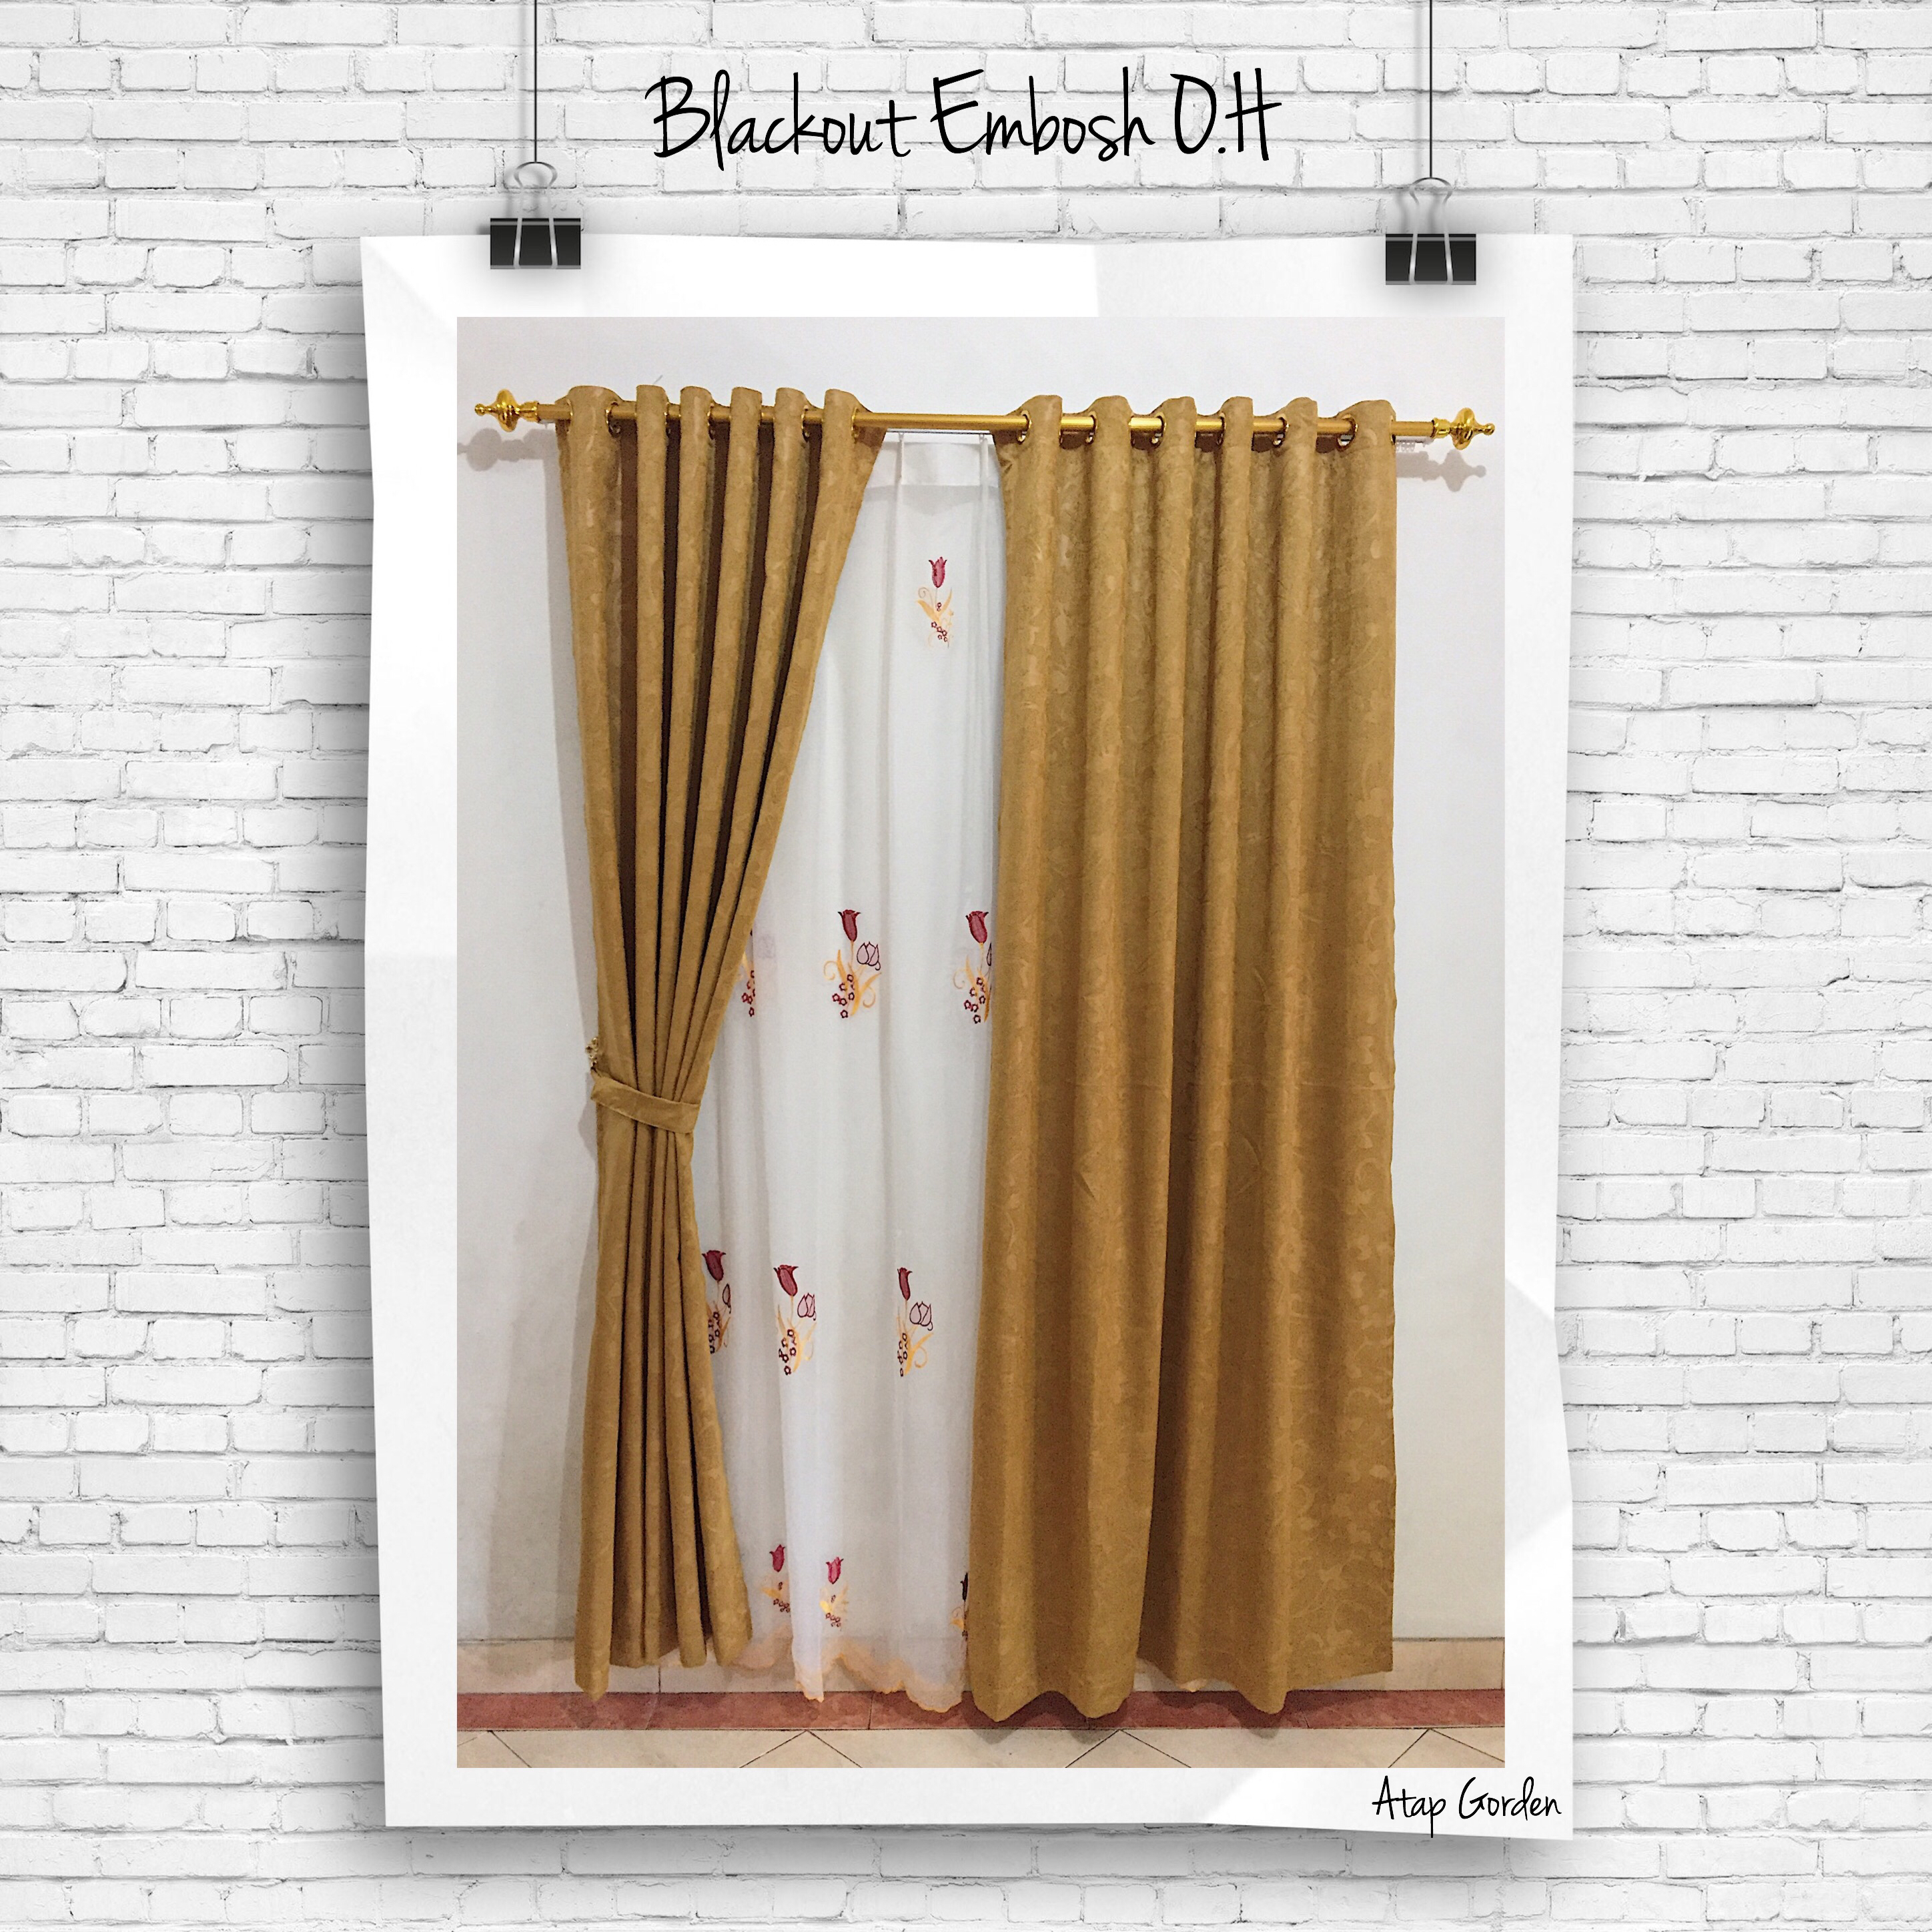 Gorden Minimalis Blackout Embosh Orange Honey Gordyn Tirai Curtains Lokal Pioner Polos Coklat .